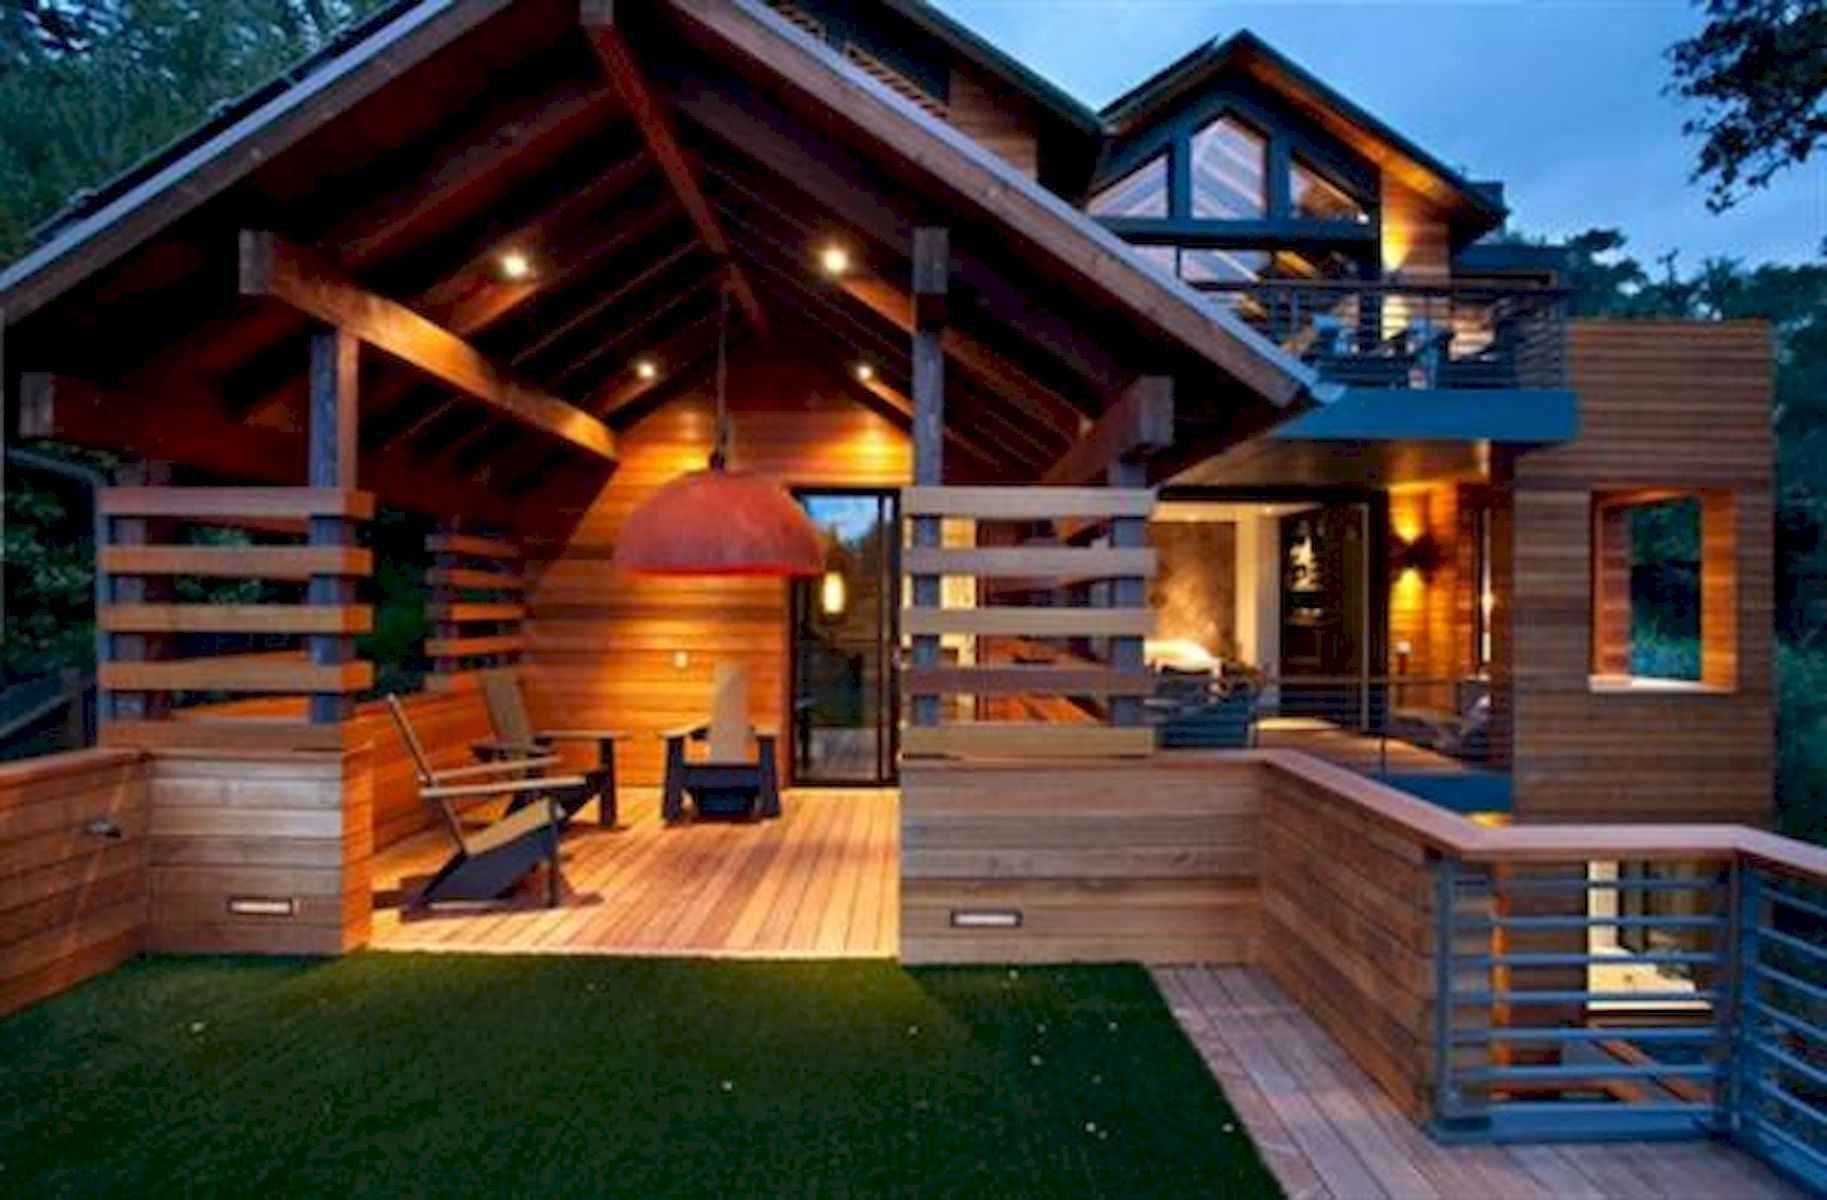 60 Rustic Log Cabin Homes Plans Design Ideas And Remodel (22)